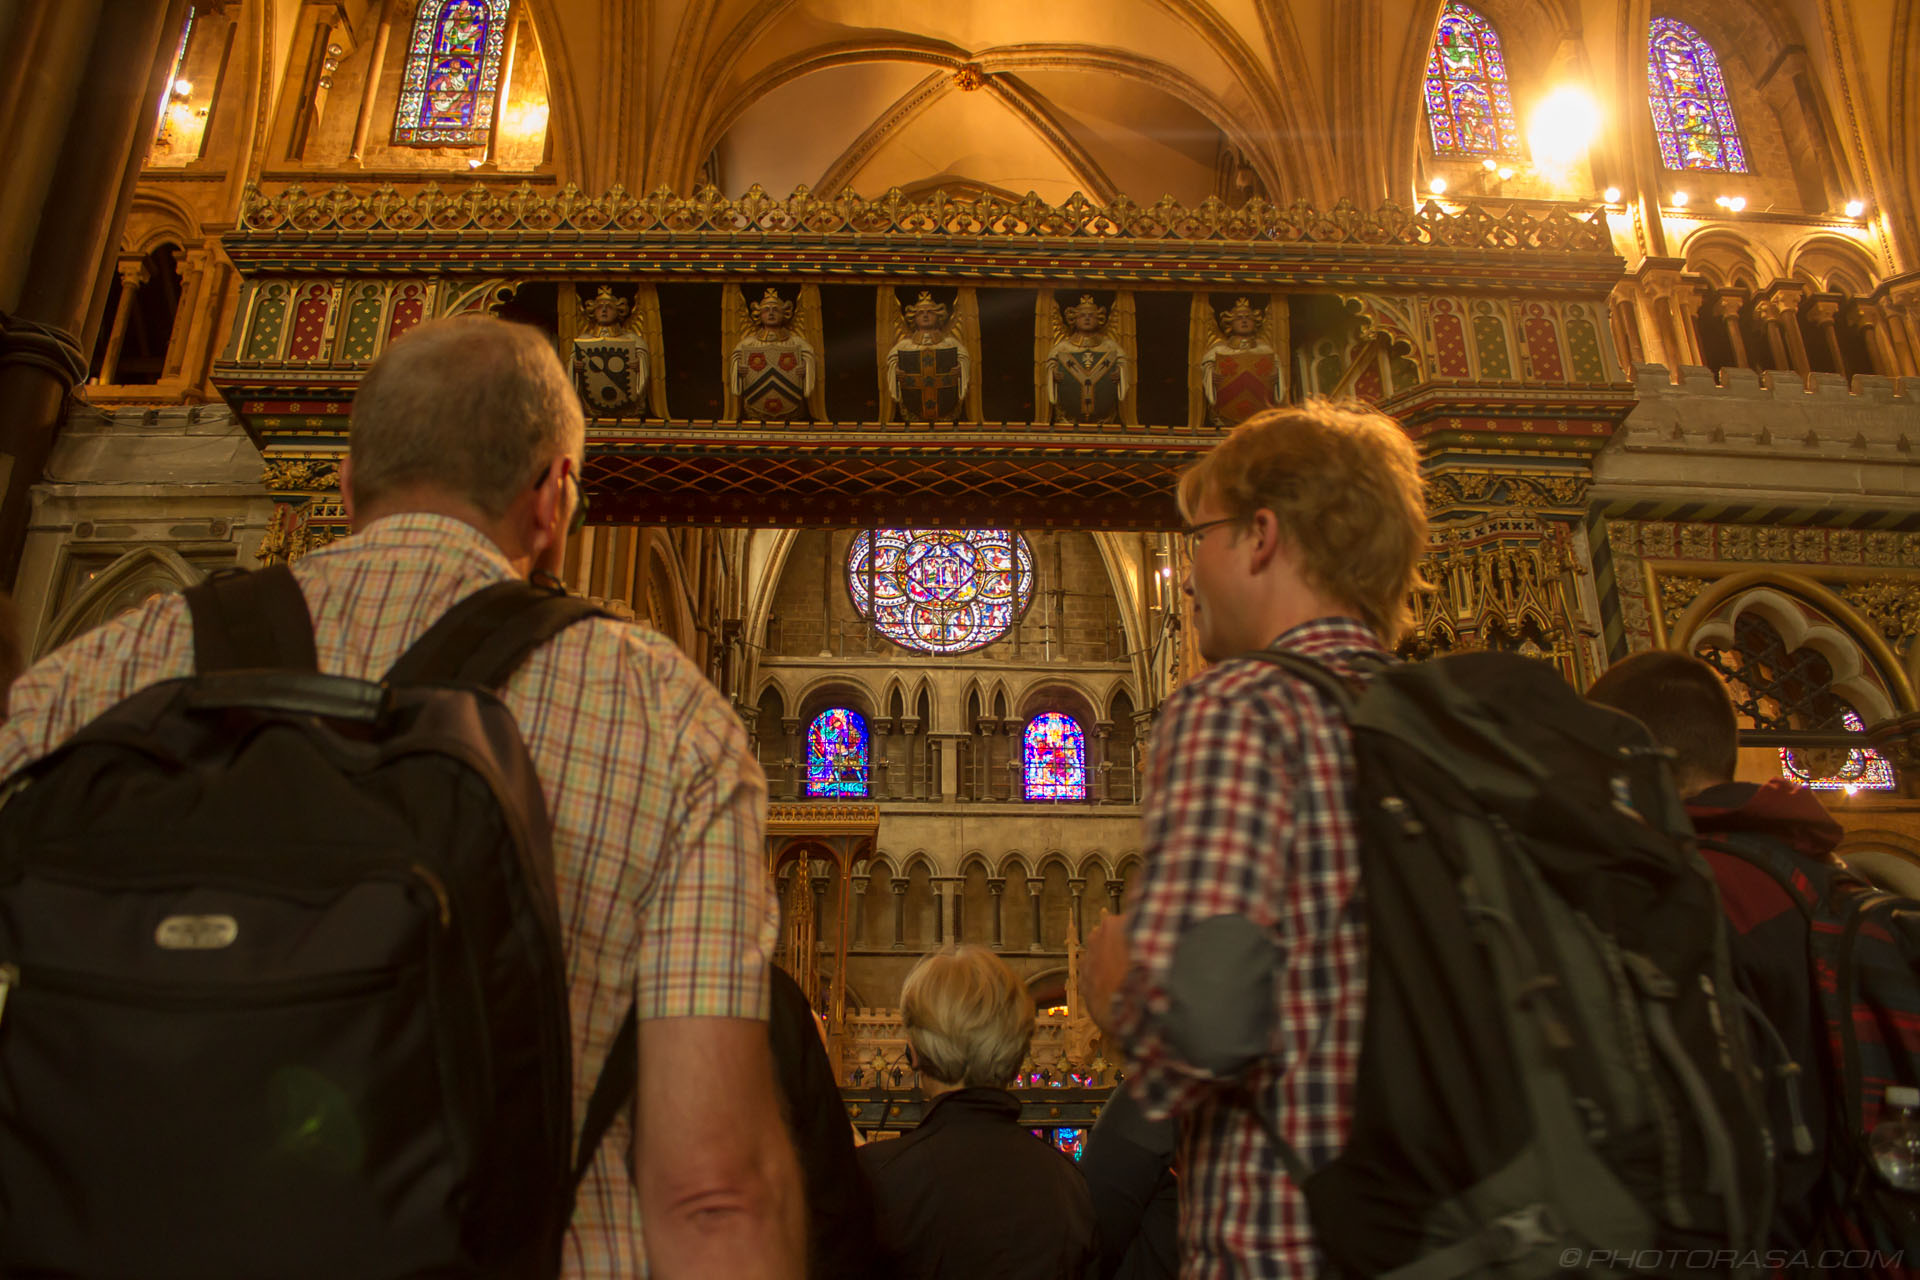 http://photorasa.com/canterbury-cathedral/visitors-observing-the-monuments-in-the-presbytery/